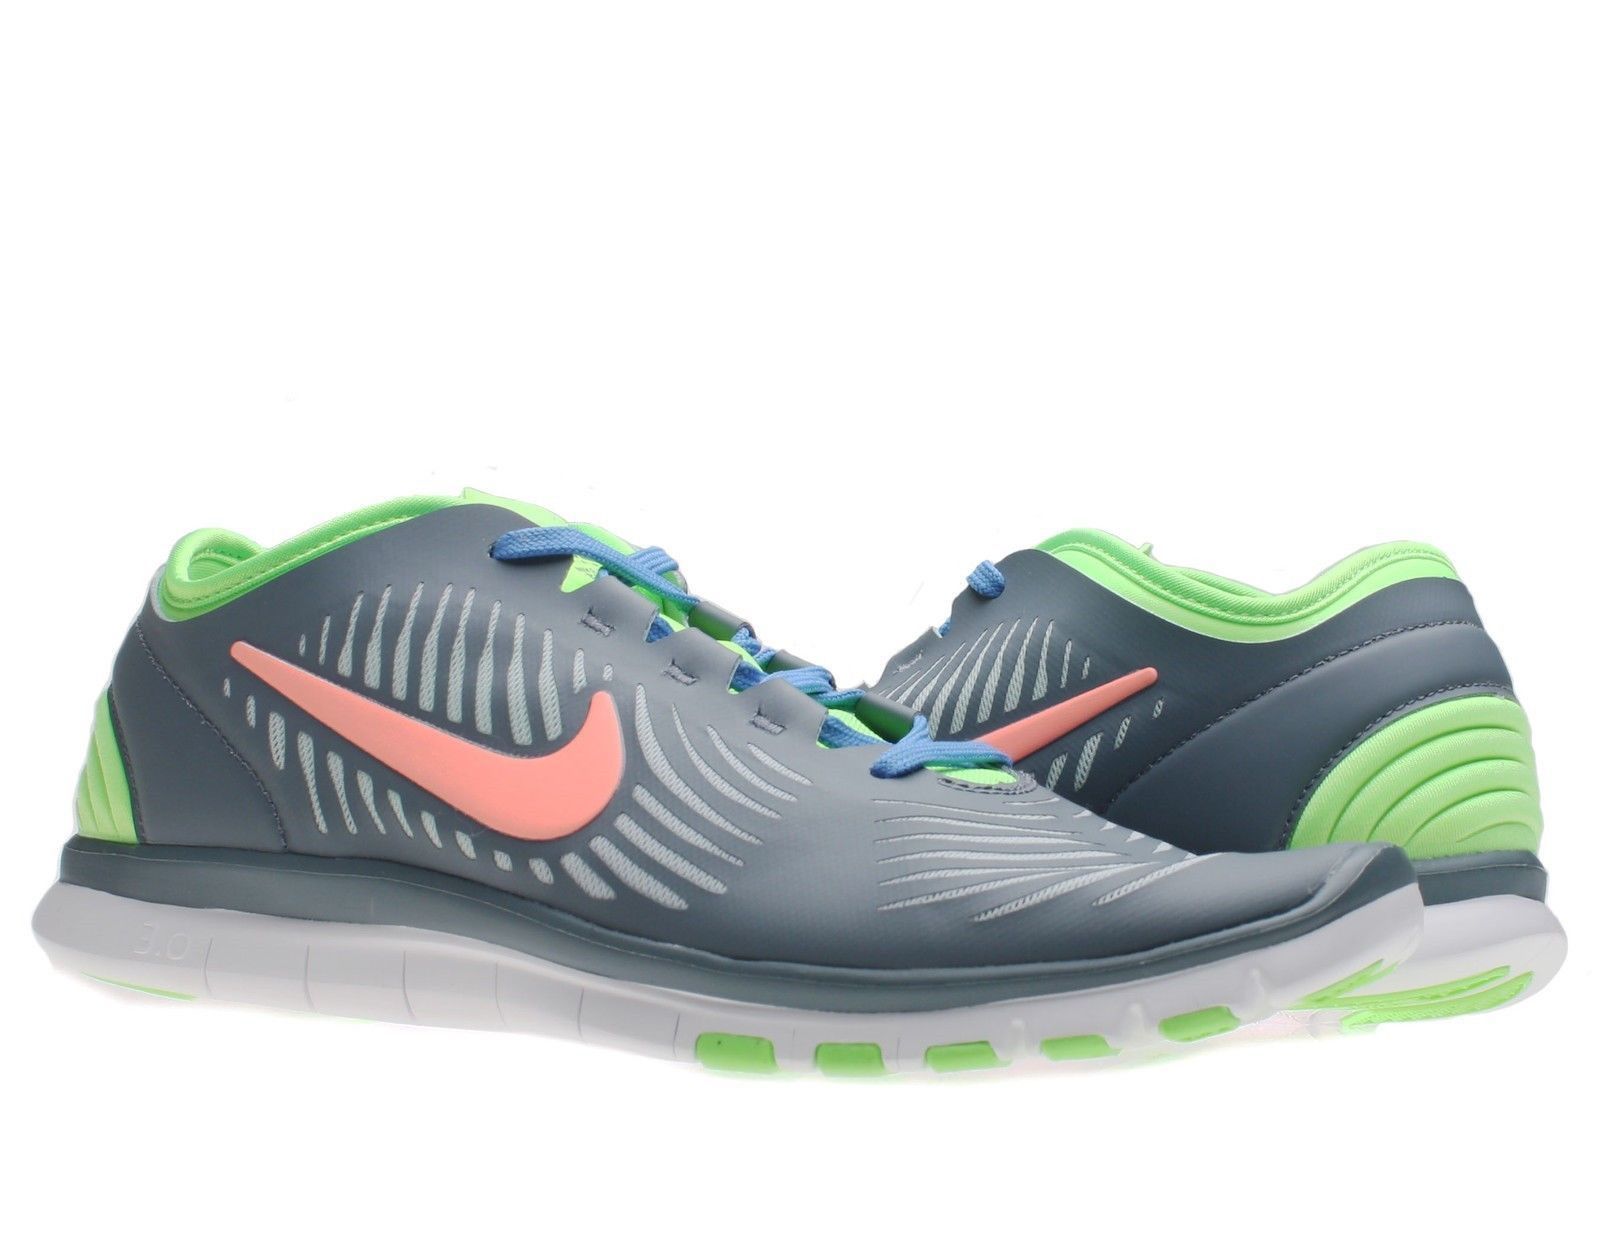 Primary image for Women's Nike Free Balanza Training Shoes, 599268 400 Sizes 6.5-10 Armory Slate/L